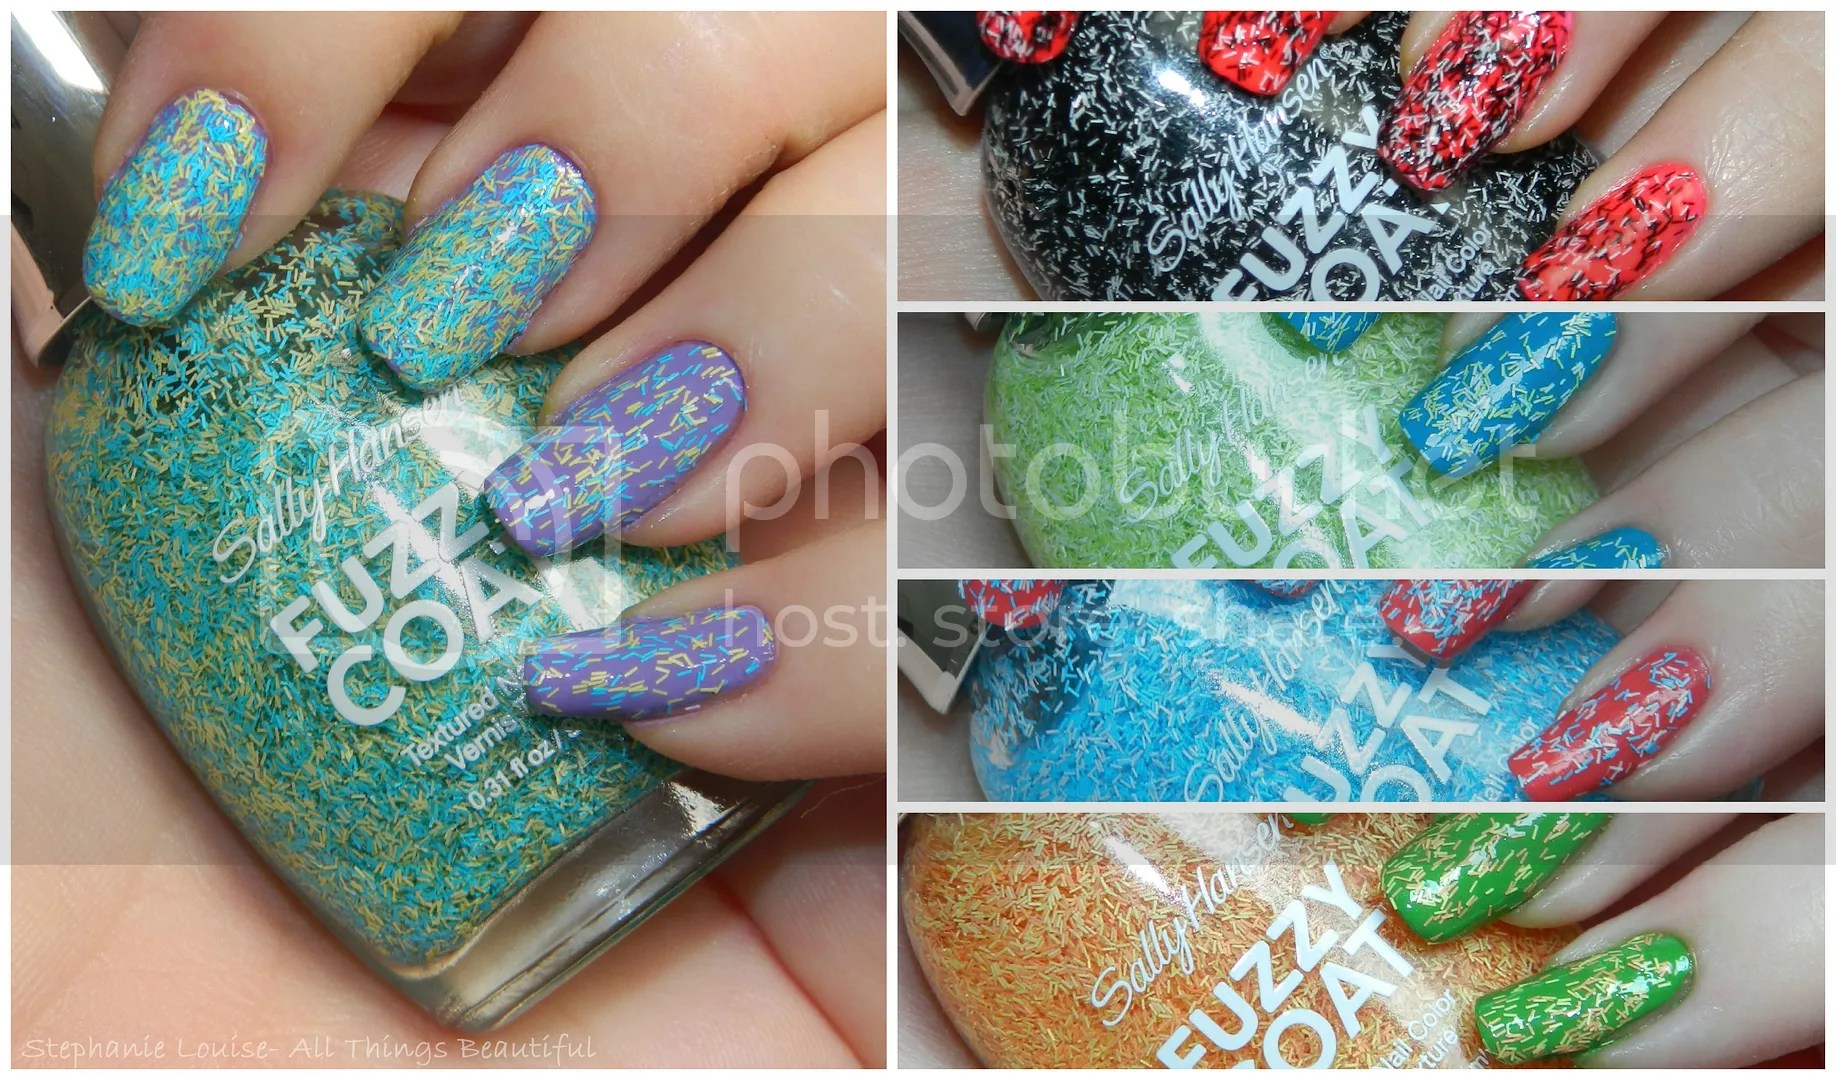 Sally Hansen Fuzzy Coat Textured Nail Polish Swatches & Review